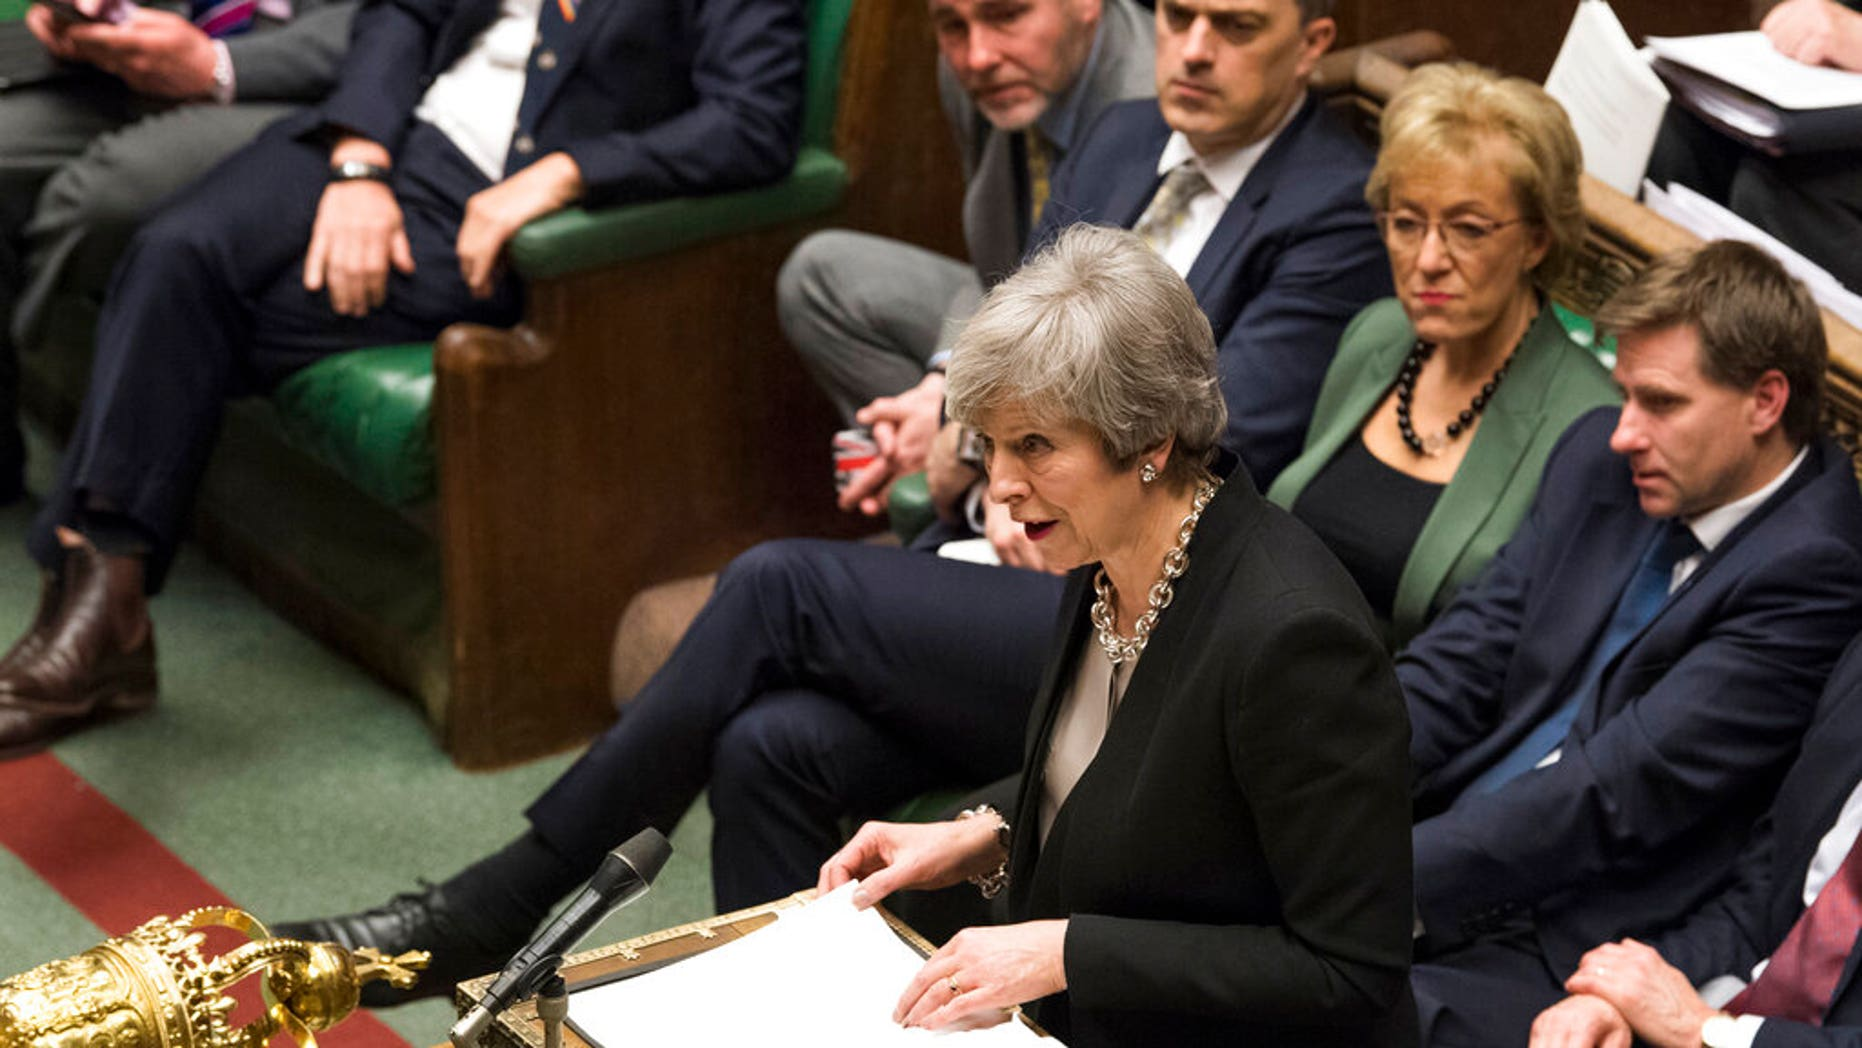 Britain's Prime Minister Theresa May reacts as she addresses the H<br> ouse of Commons Parliament during the debate on Britain's Brexit European Union Withdrawal Act, in London, Tuesday Jan. 29, 2019.(Jessica Taylor/UK Parliament via AP)